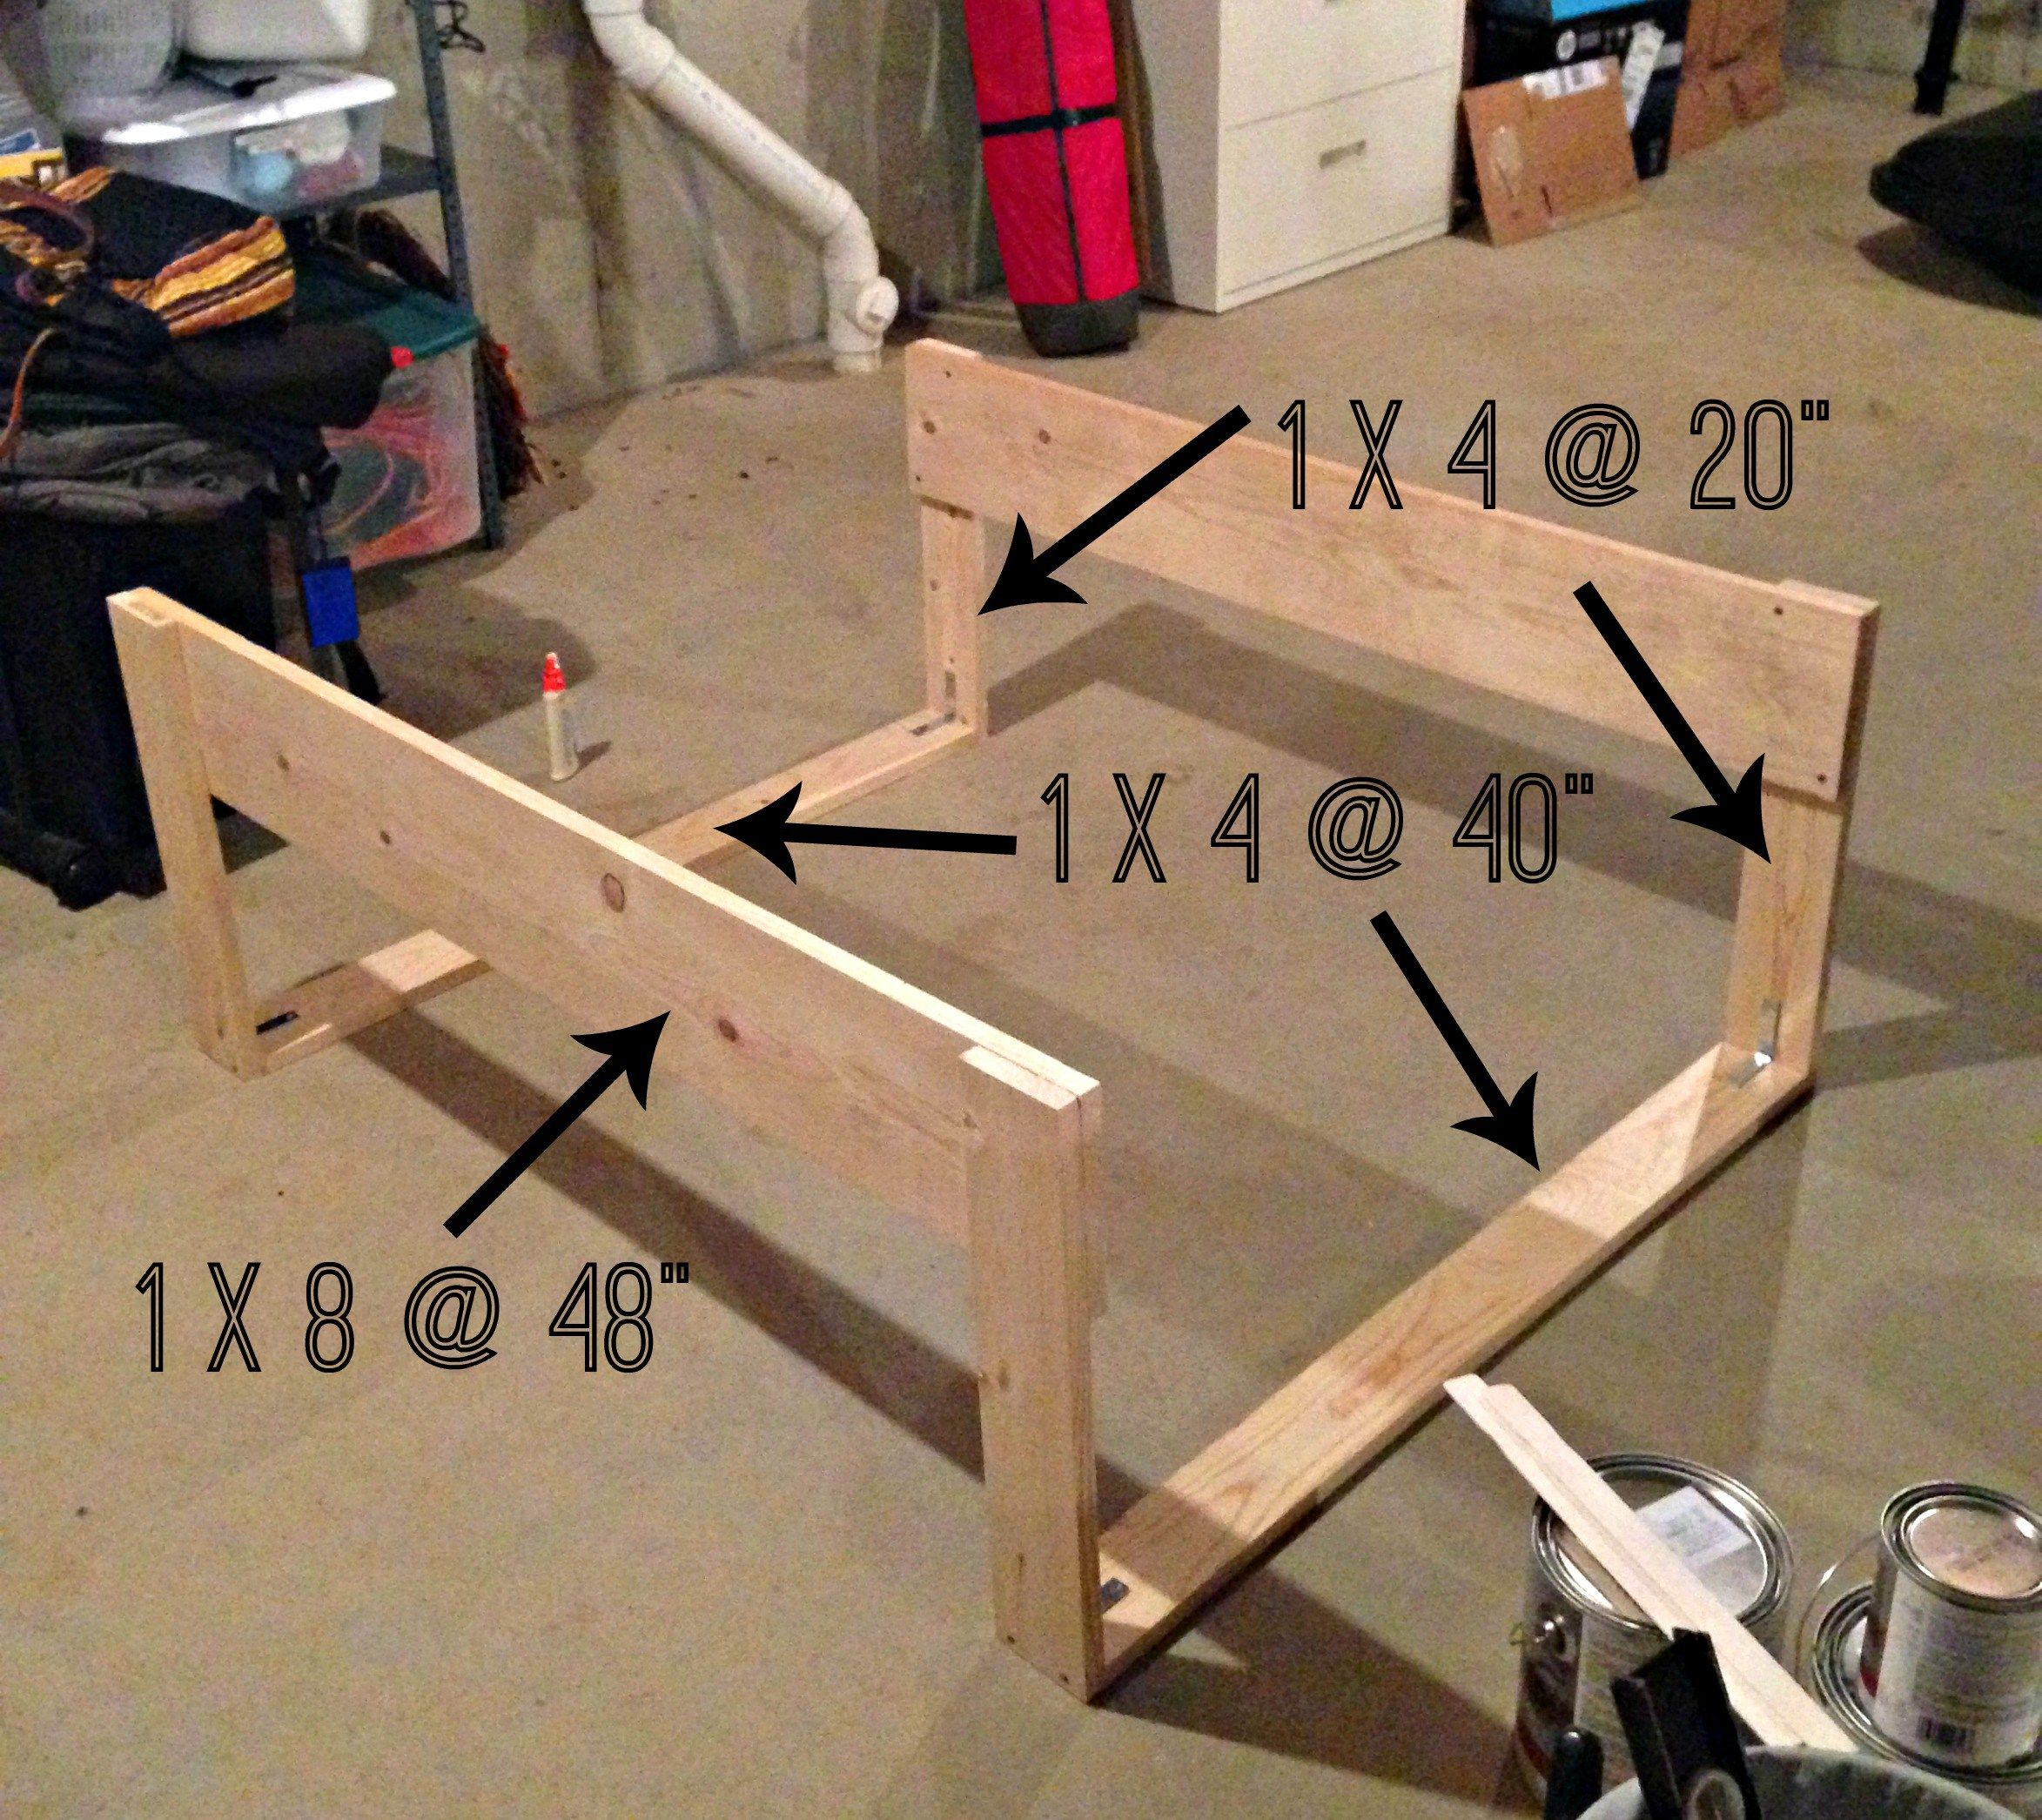 Diy Toddler Bed Rails Diy Toddler Bed Bed Rails For